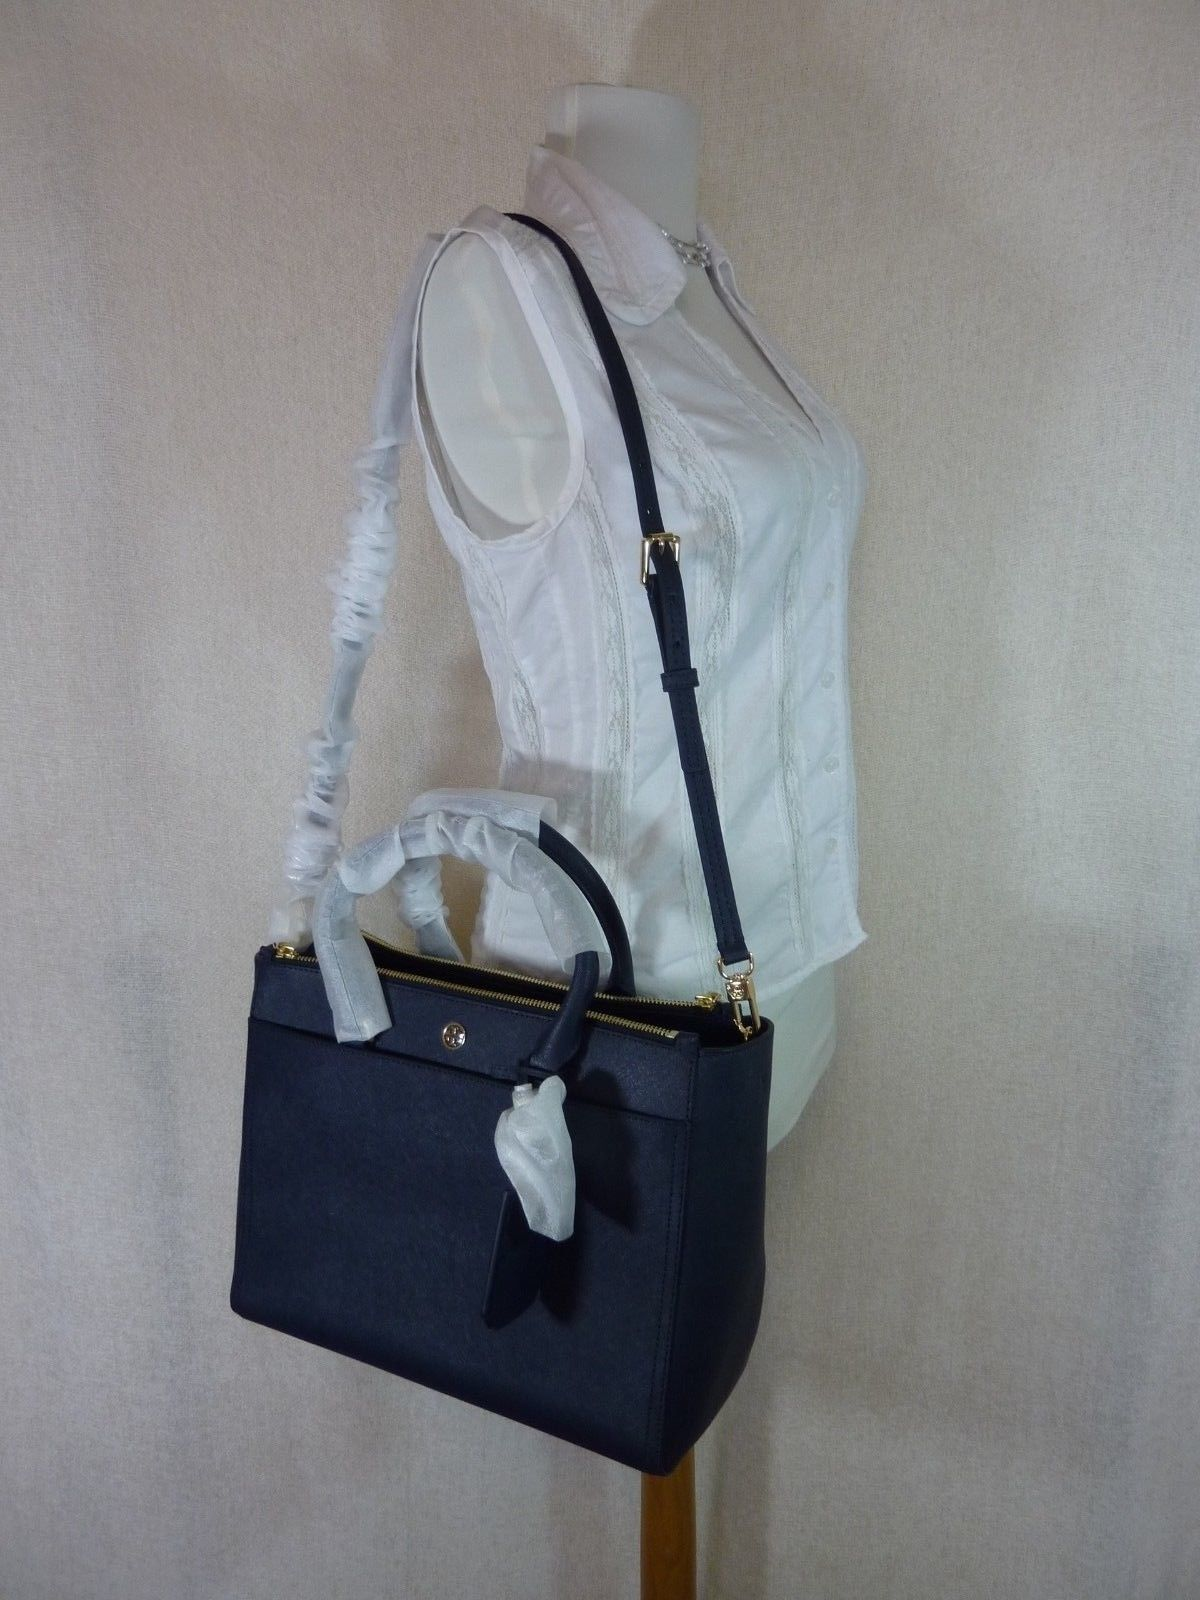 Tory Burch Navy Blue Saffiano Leather Robinson Double-Zip Tote $458 image 7